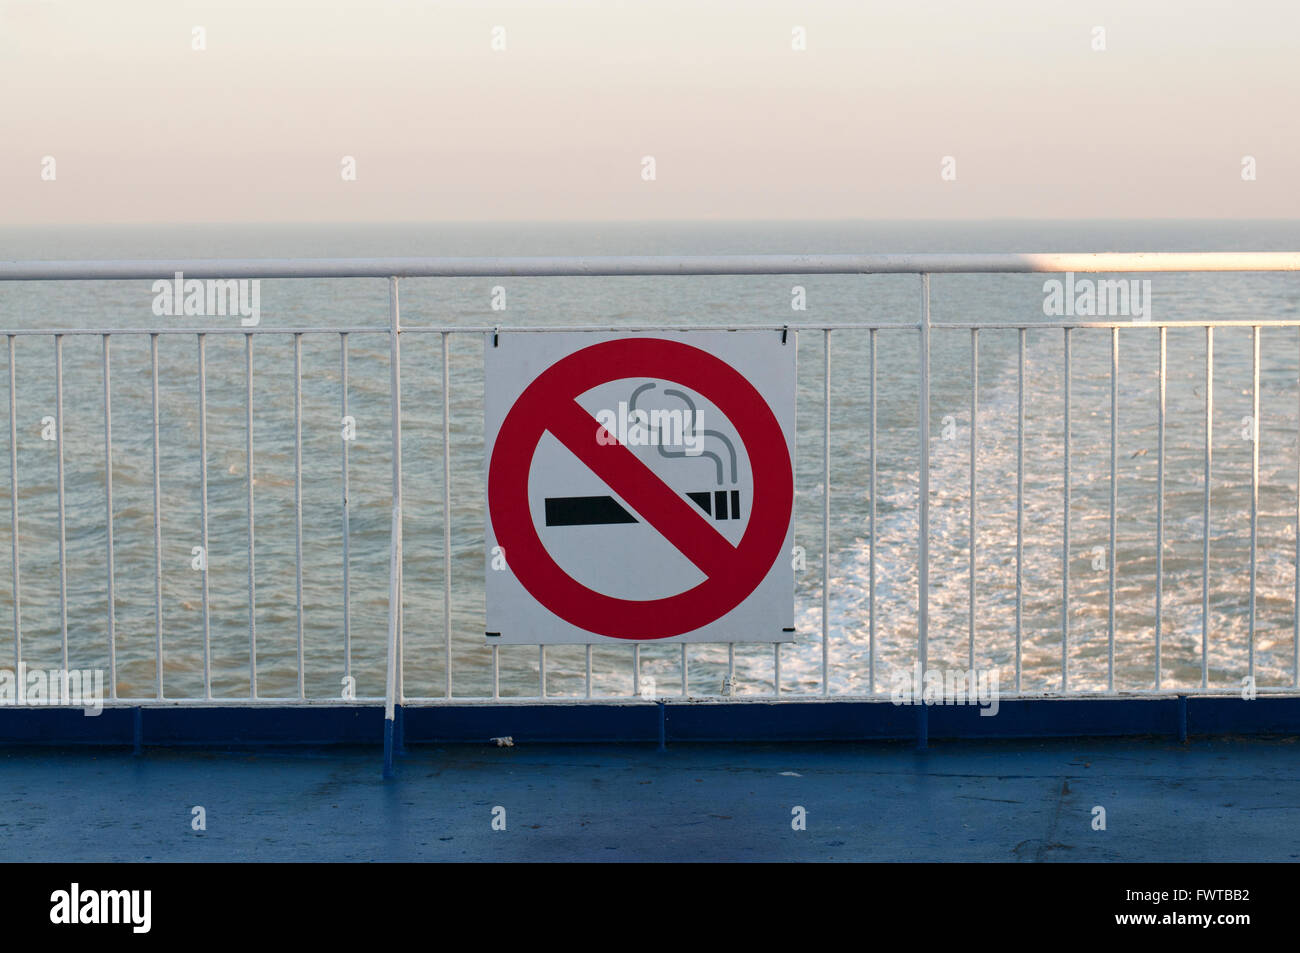 No smoking sign on the deck of an English Channel ferry - Stock Image